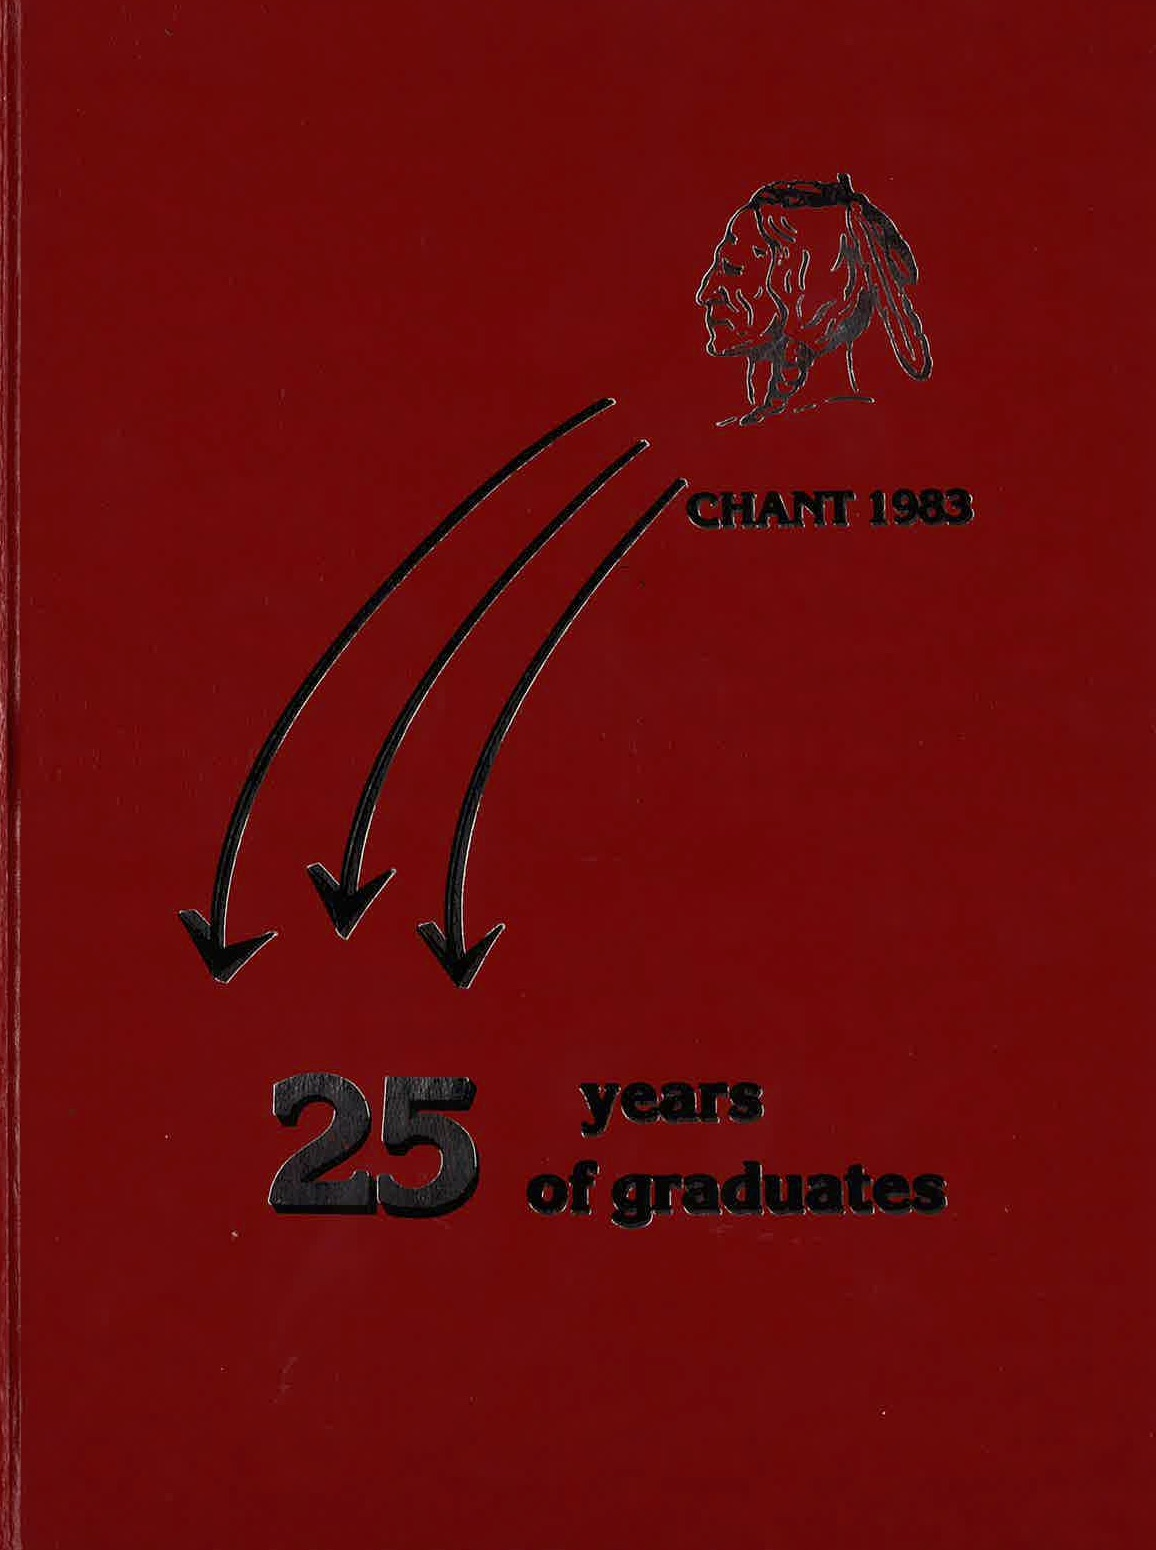 1983_Yearbook_Cover.jpg